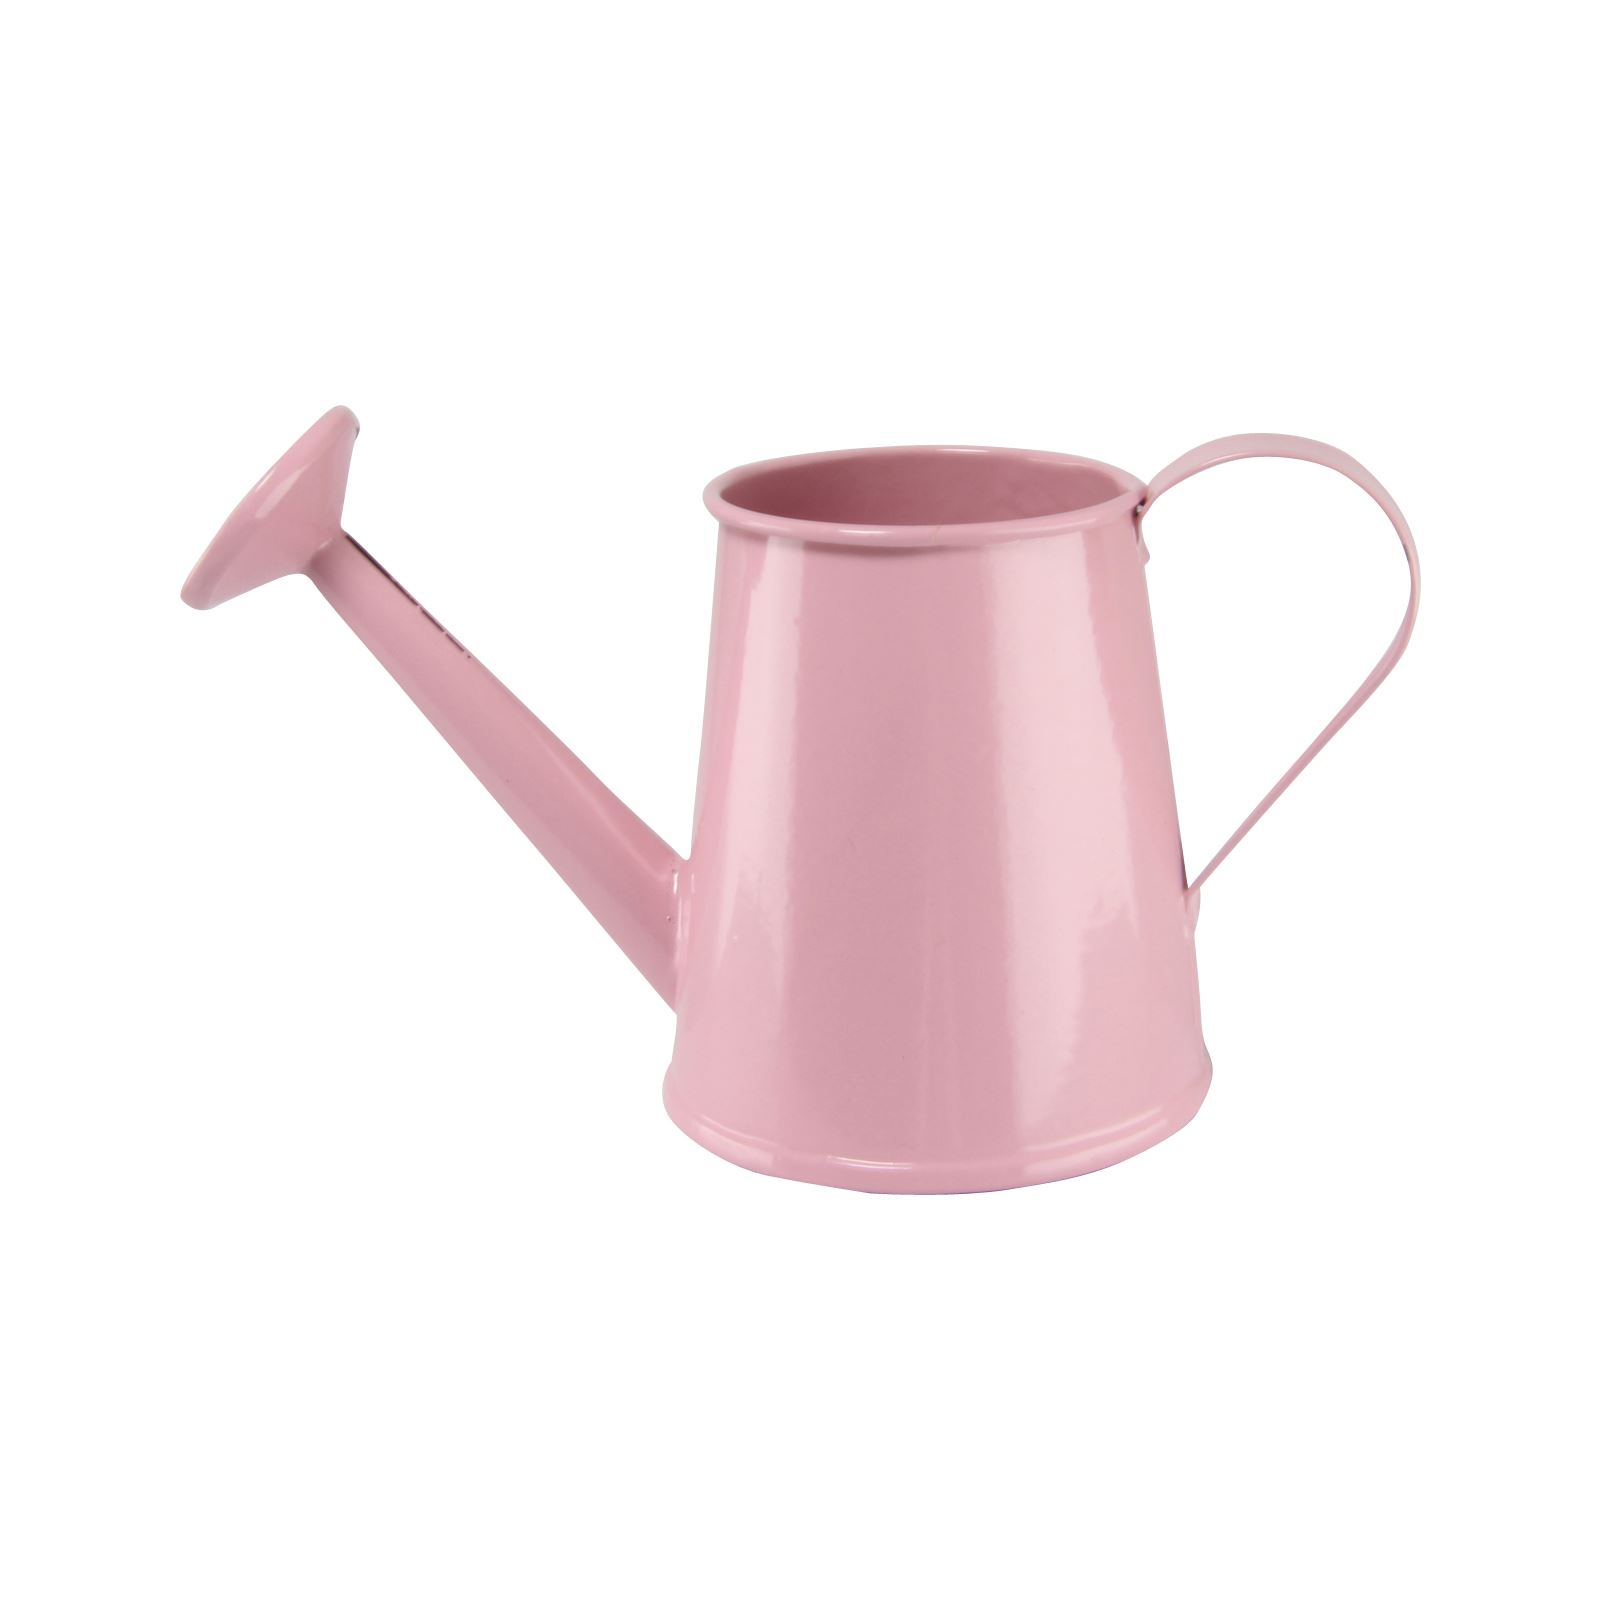 Small 9x15cm Watering Can Favor Mini Water Can Pot Jug Pink | eBay